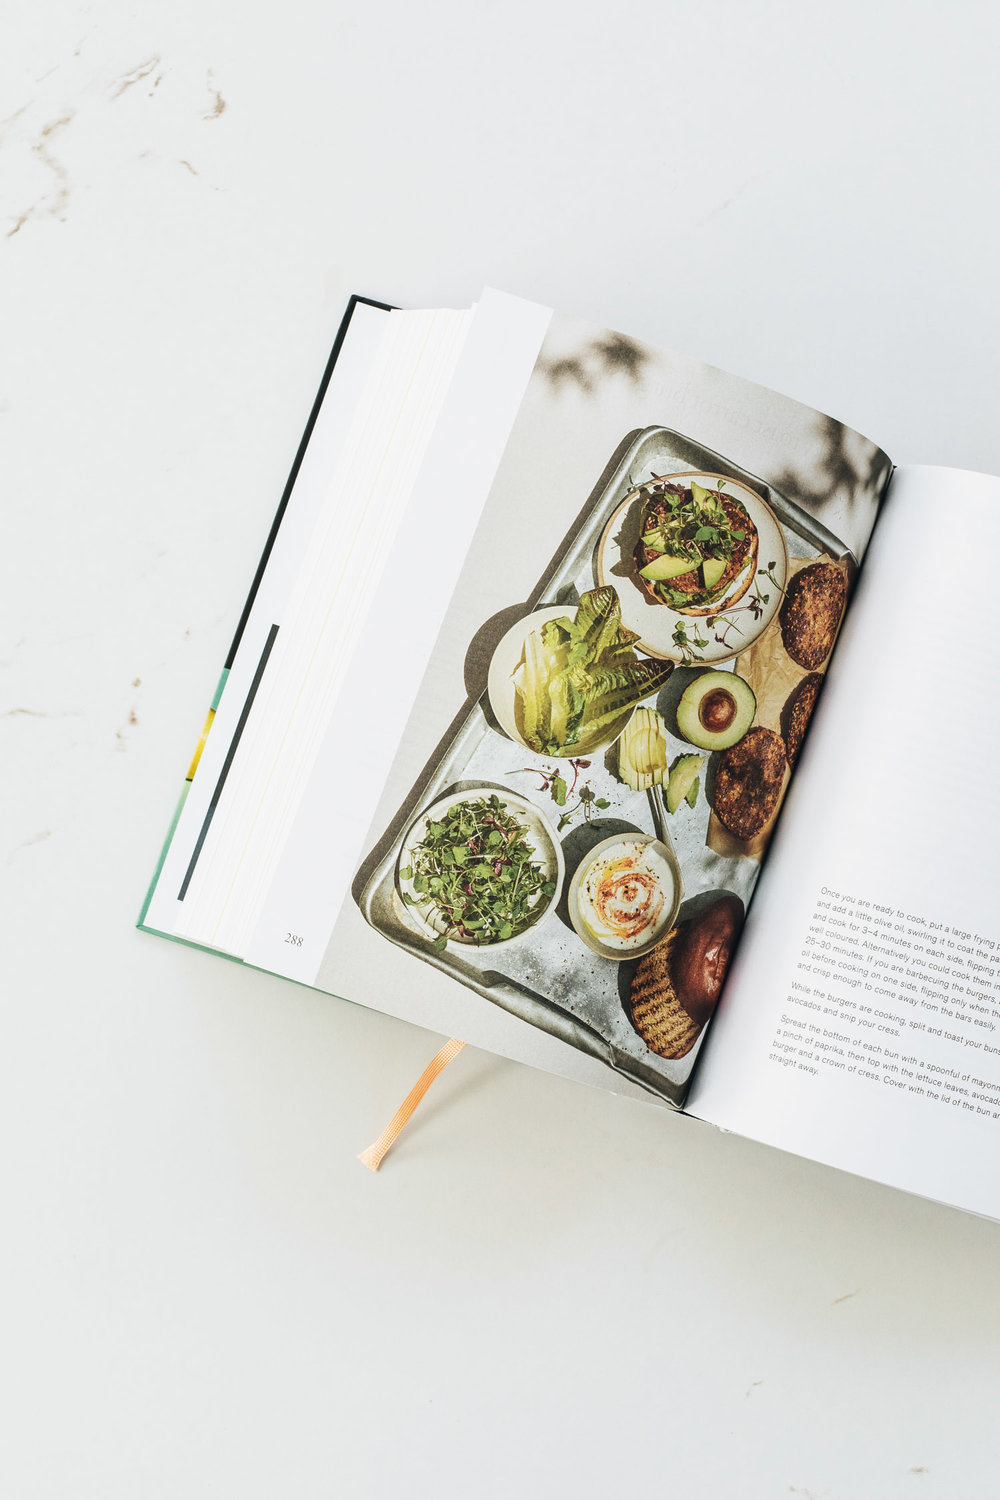 Rye Cookbook Club - The Modern Cook's Year by Anna Jones